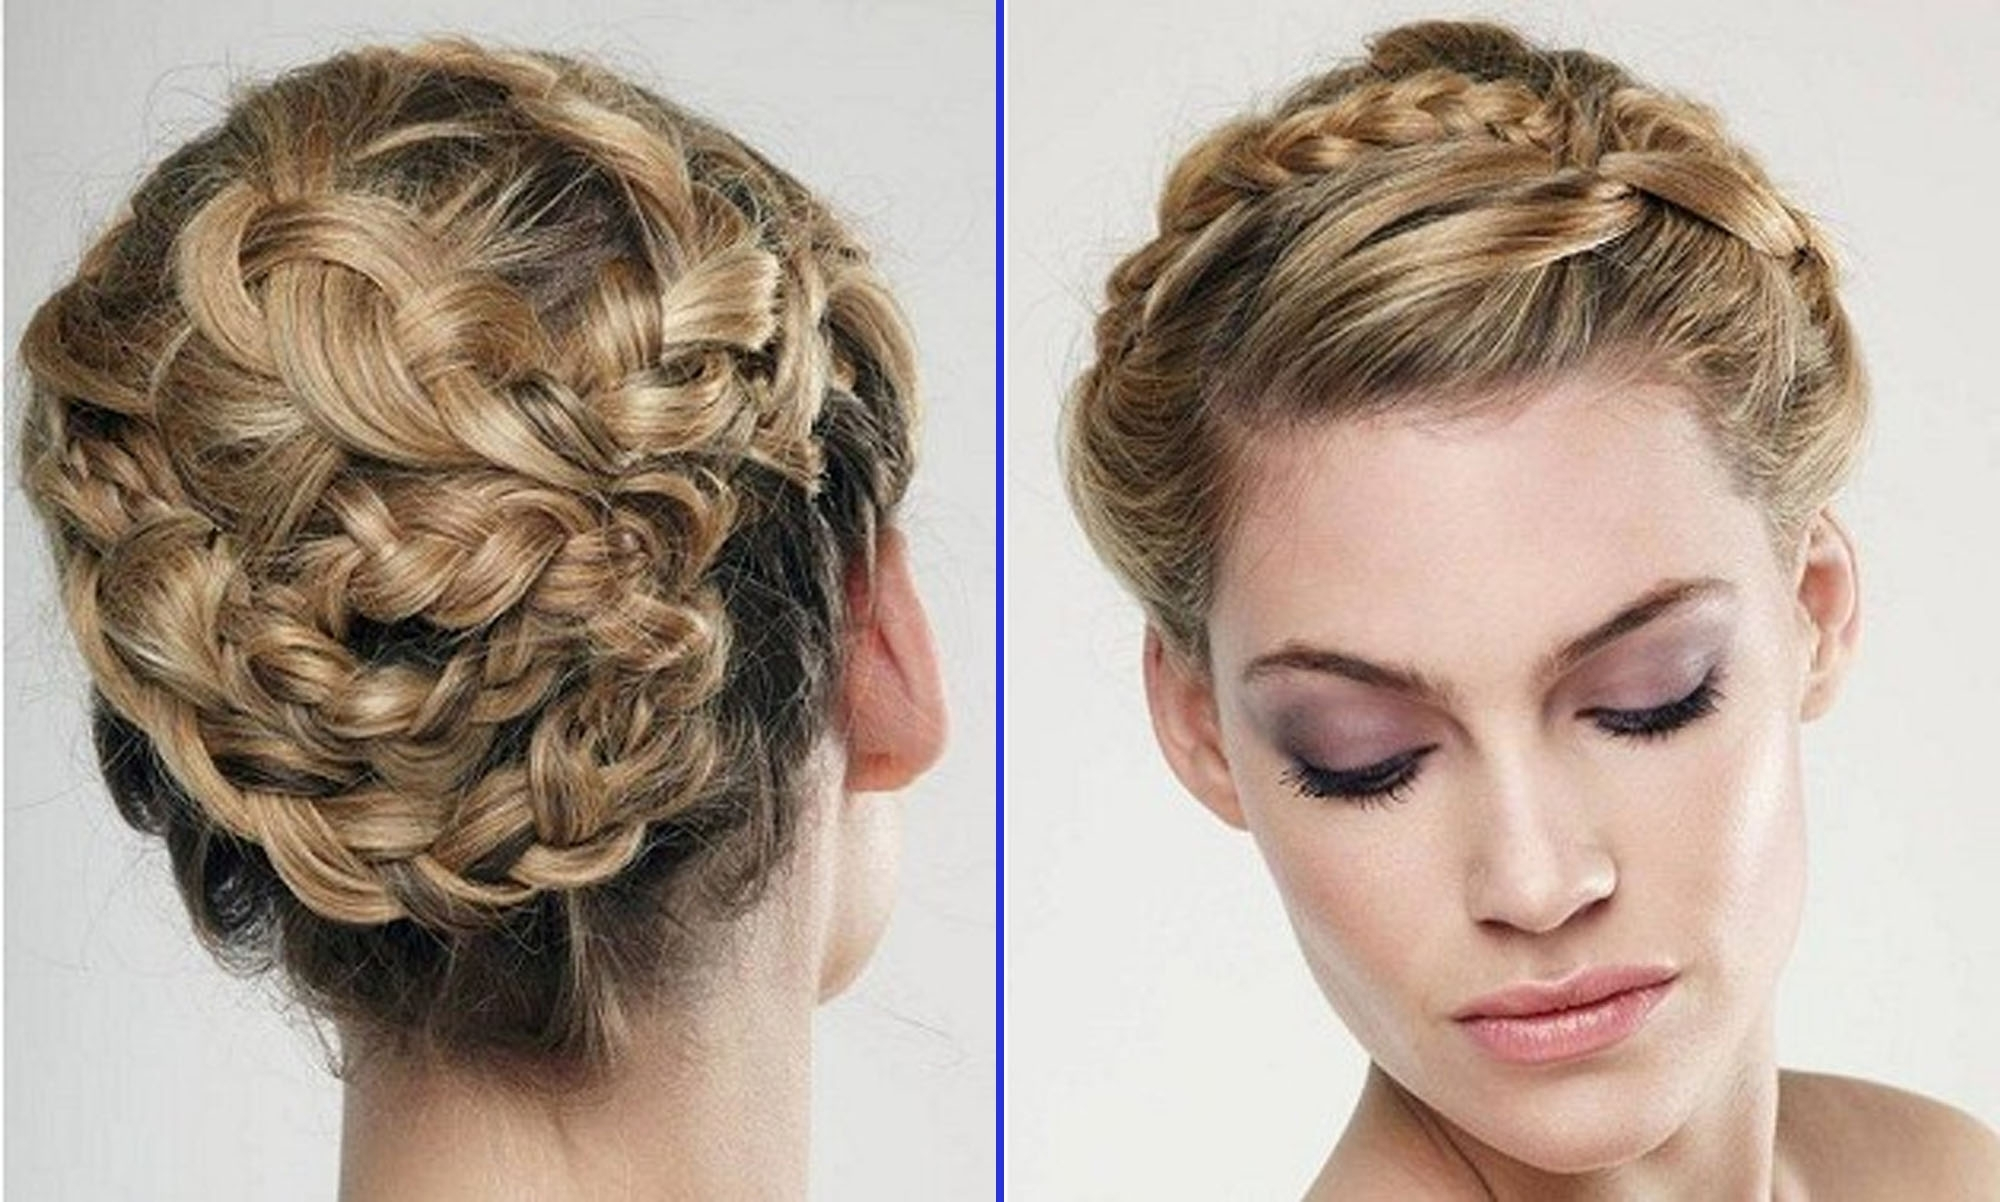 Braided Updo Hairstyles Wedding For Women Hairdresser | Medium Hair Pertaining To Braided Updo Hairstyles (View 6 of 15)